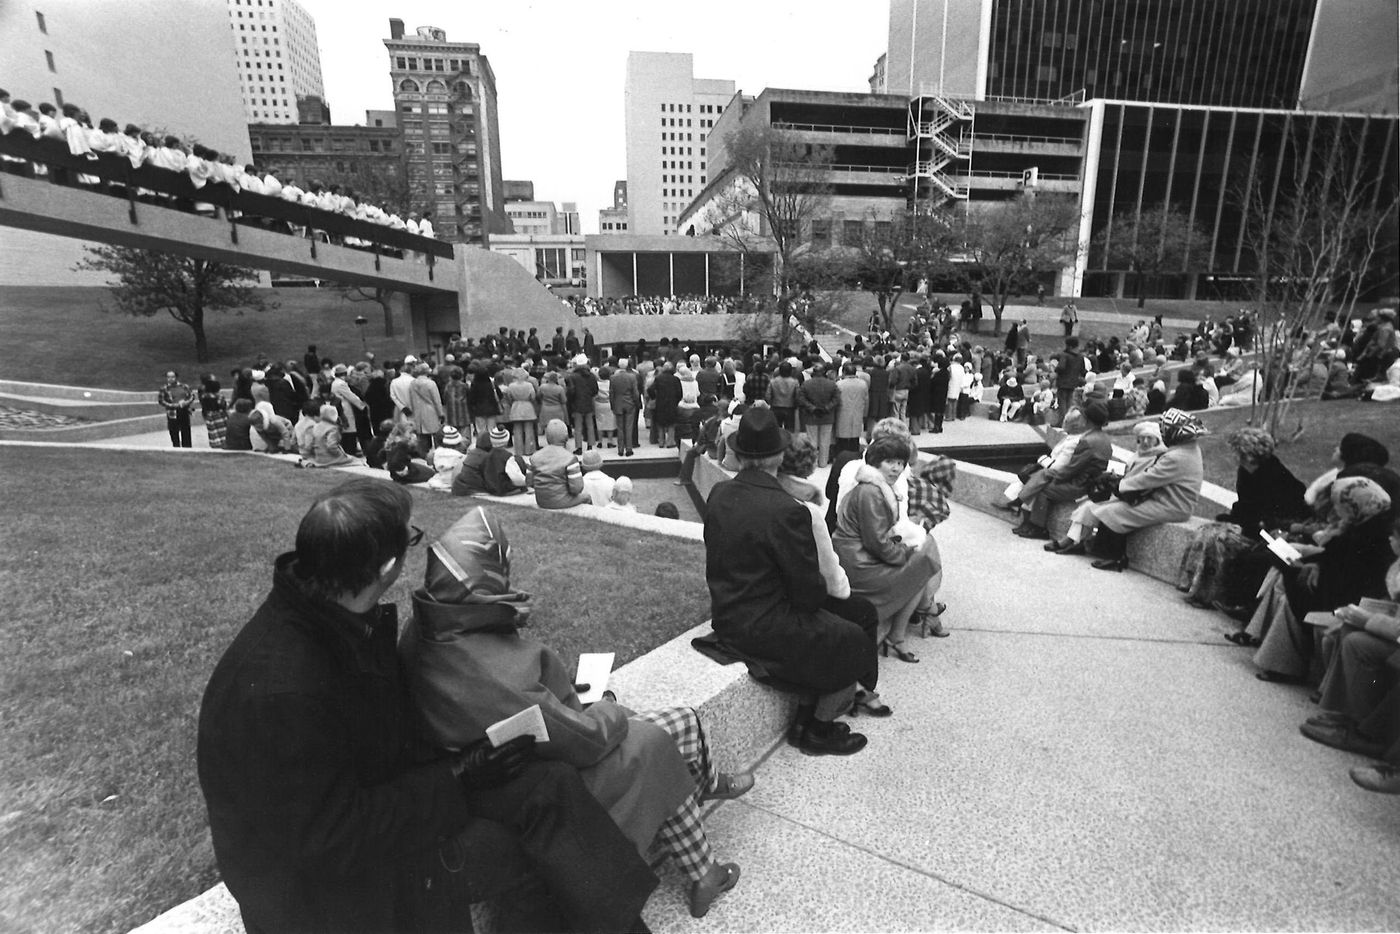 A crowd listening to Christmas carols at Thanks-Giving Square in 1977.